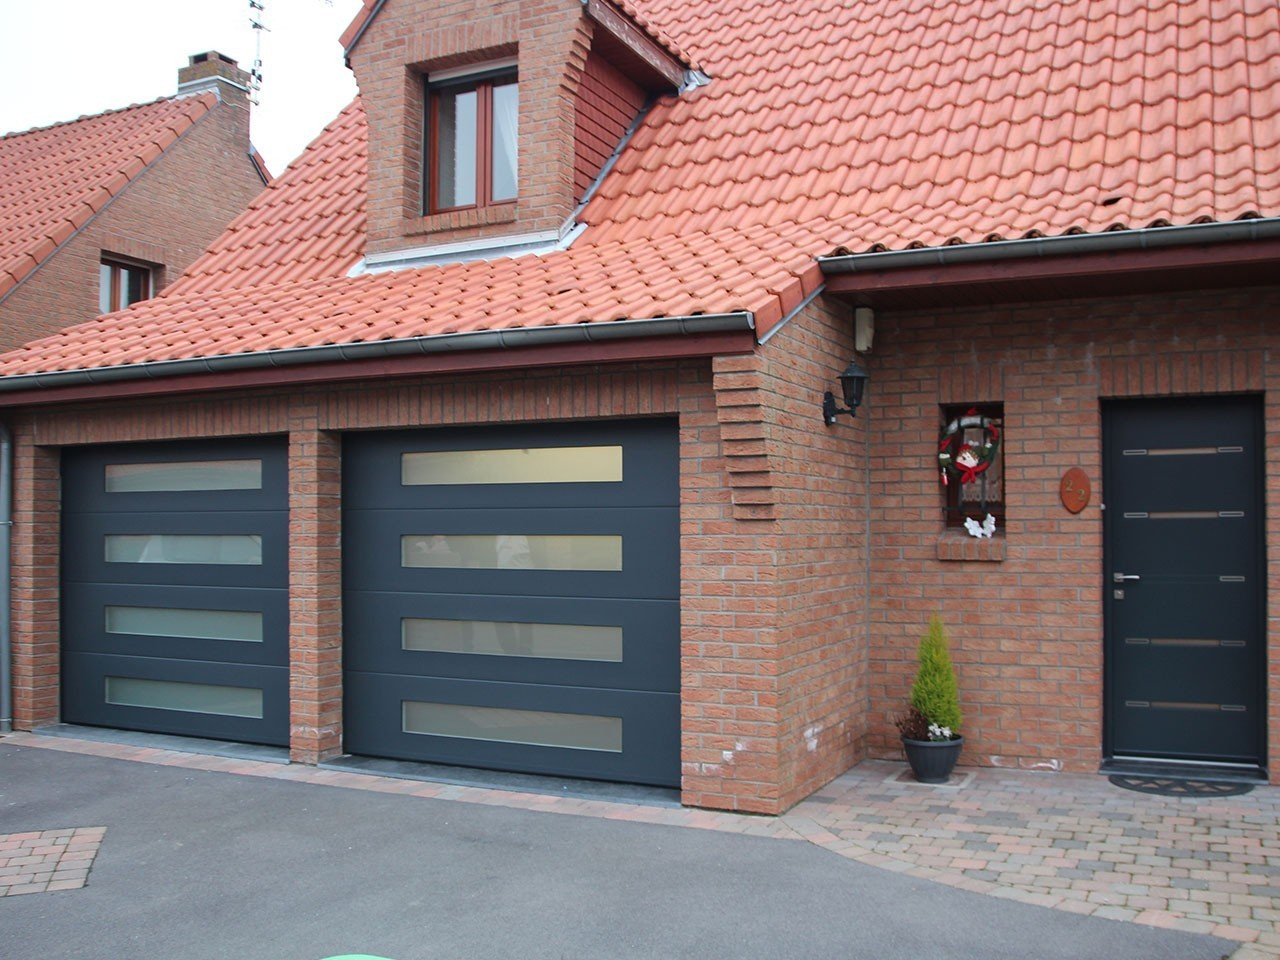 Porte garage sectionnelle vitr e su66 jornalagora for Fabricant porte de garage sectionnelle